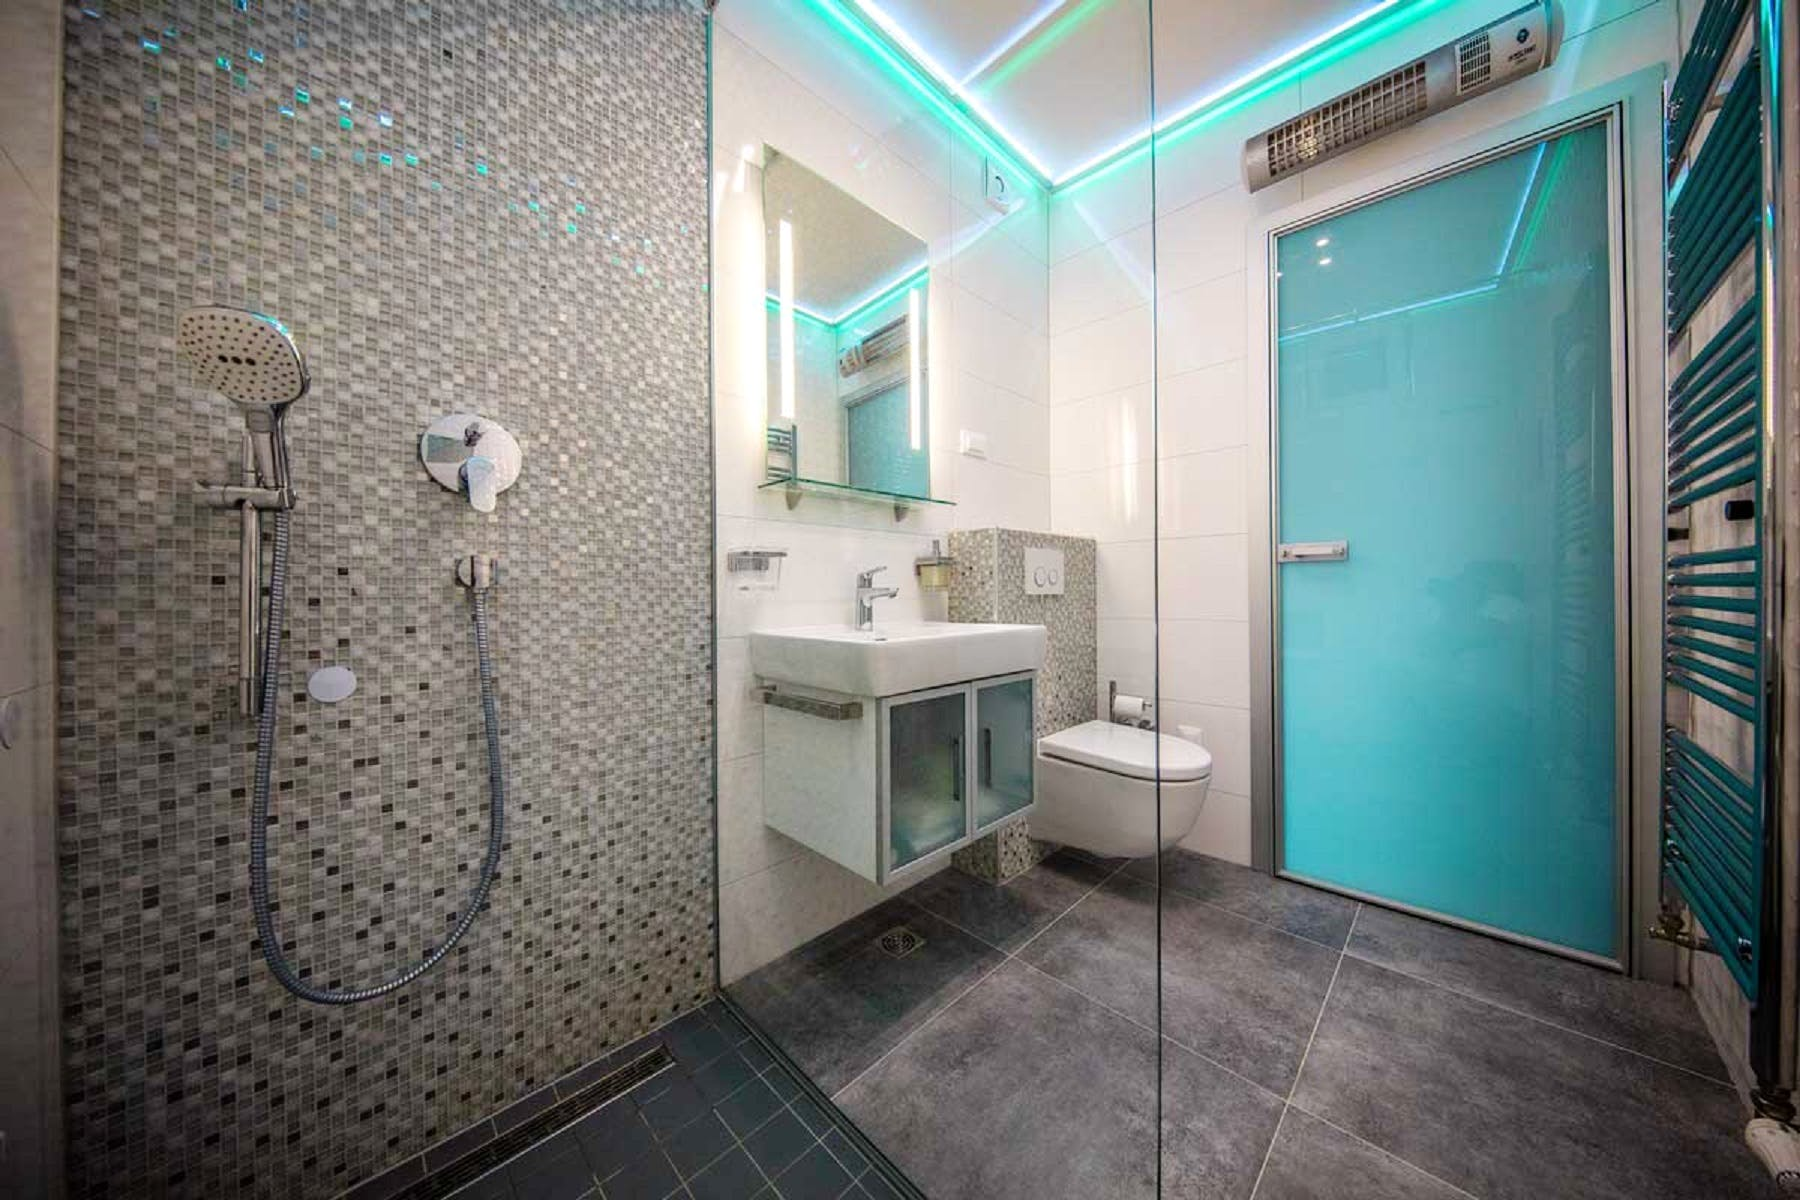 Modernly equipped bathroom